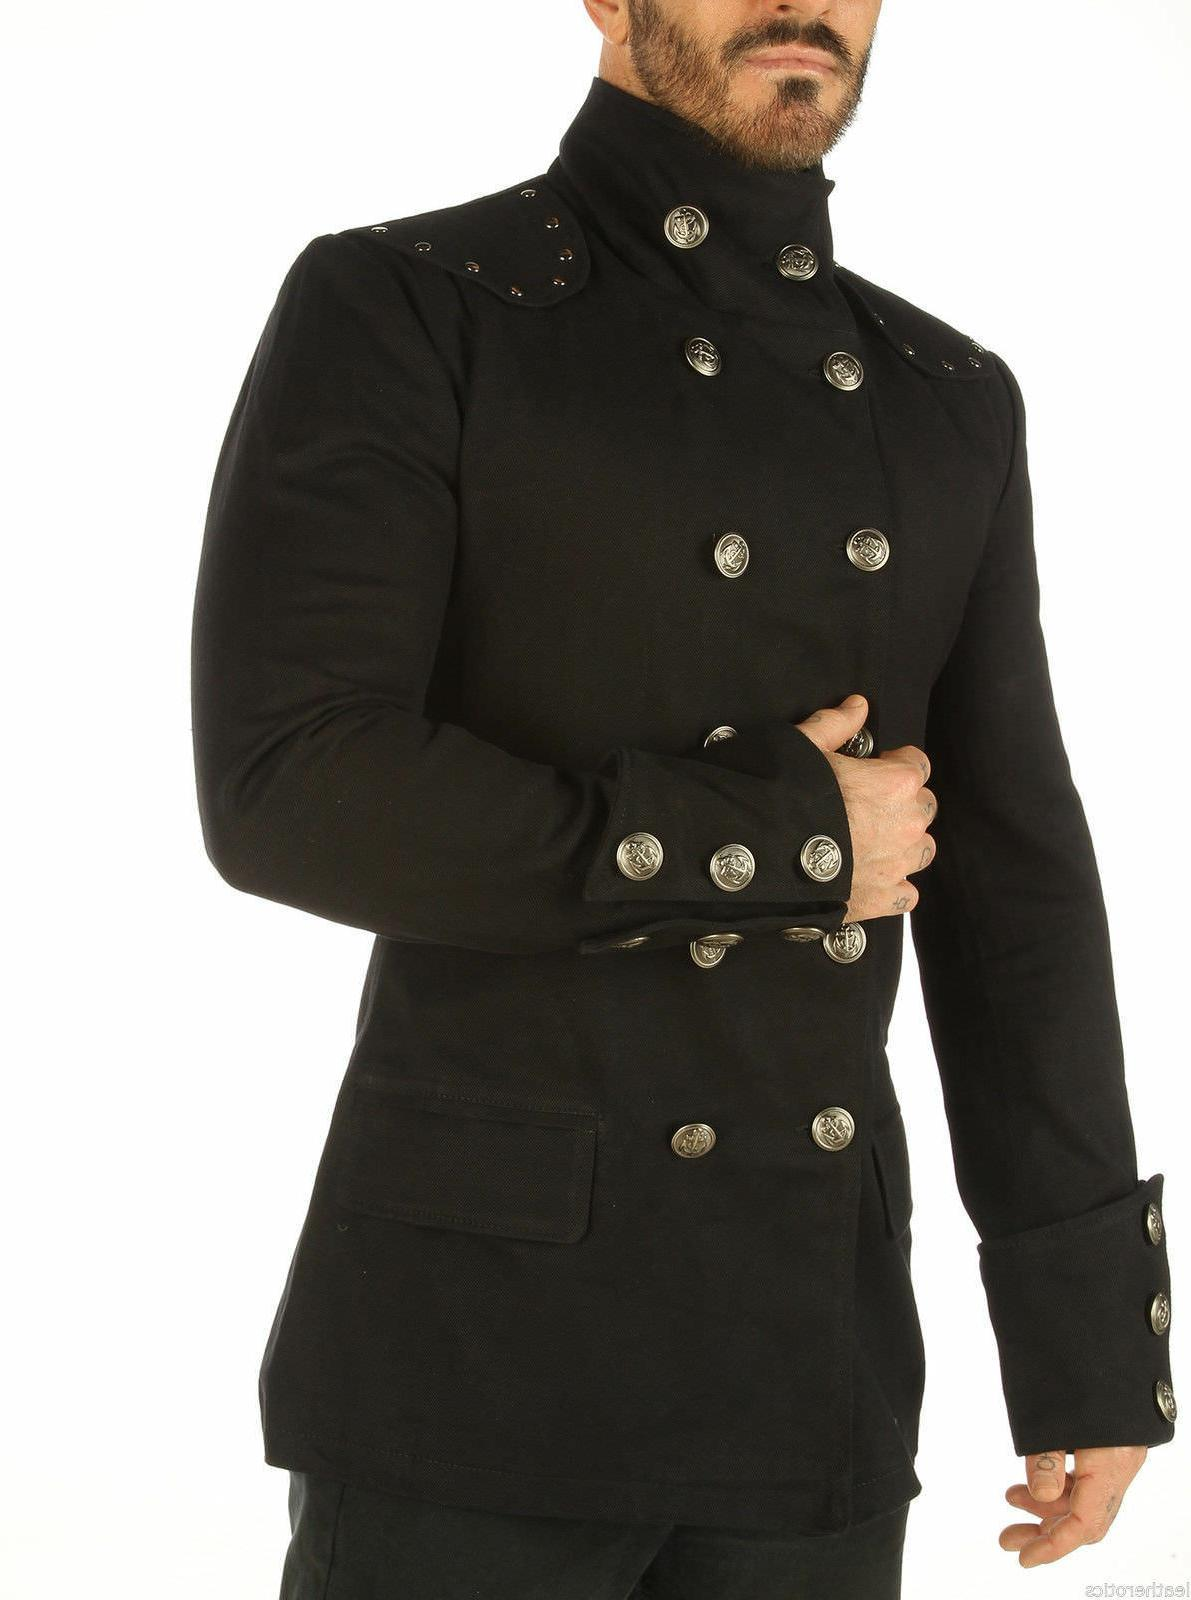 Gothic Military Jacket Mens Black Cotton Top Trench Black Co